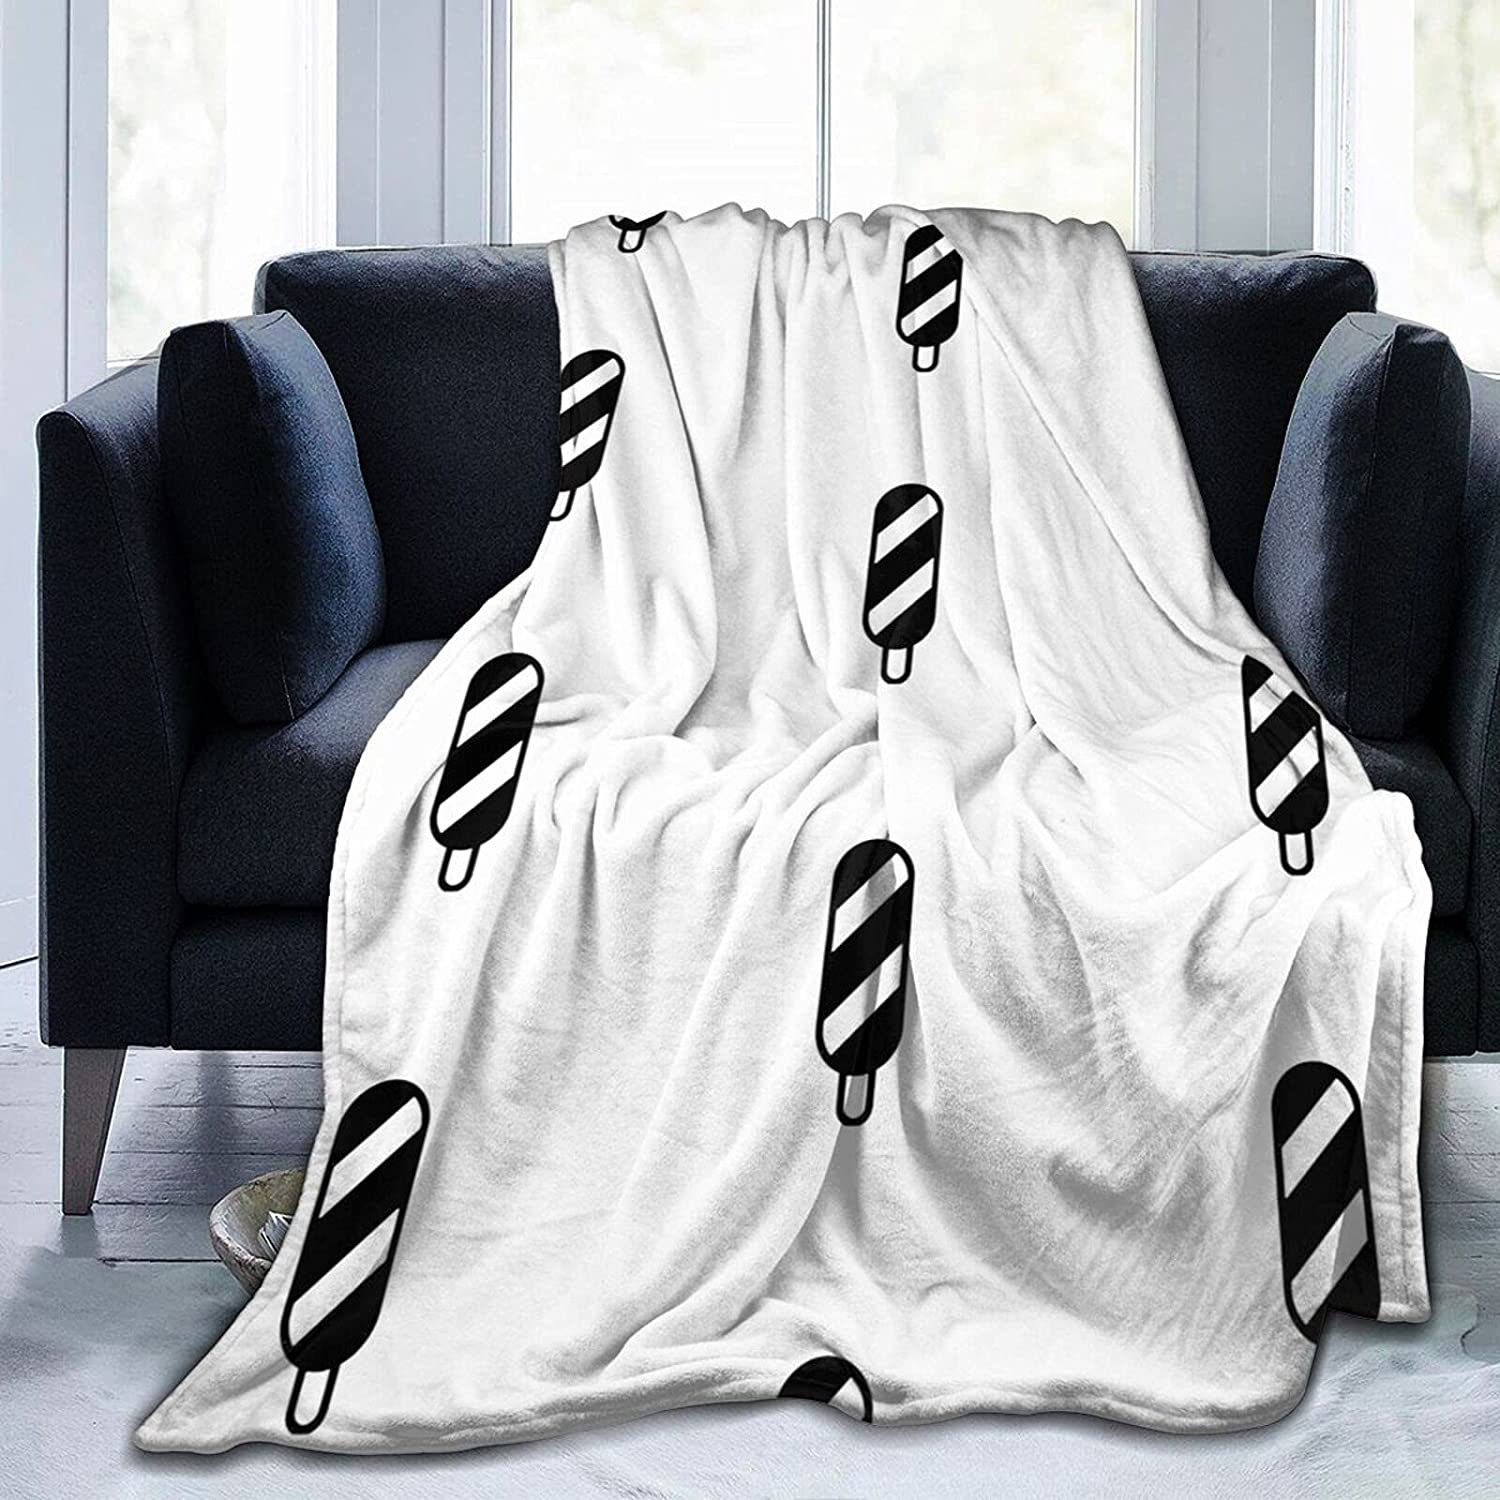 Ice-Cream_19 Branded goods Blanket Soft and Micro Wool Easy-to-use Super Comfortable